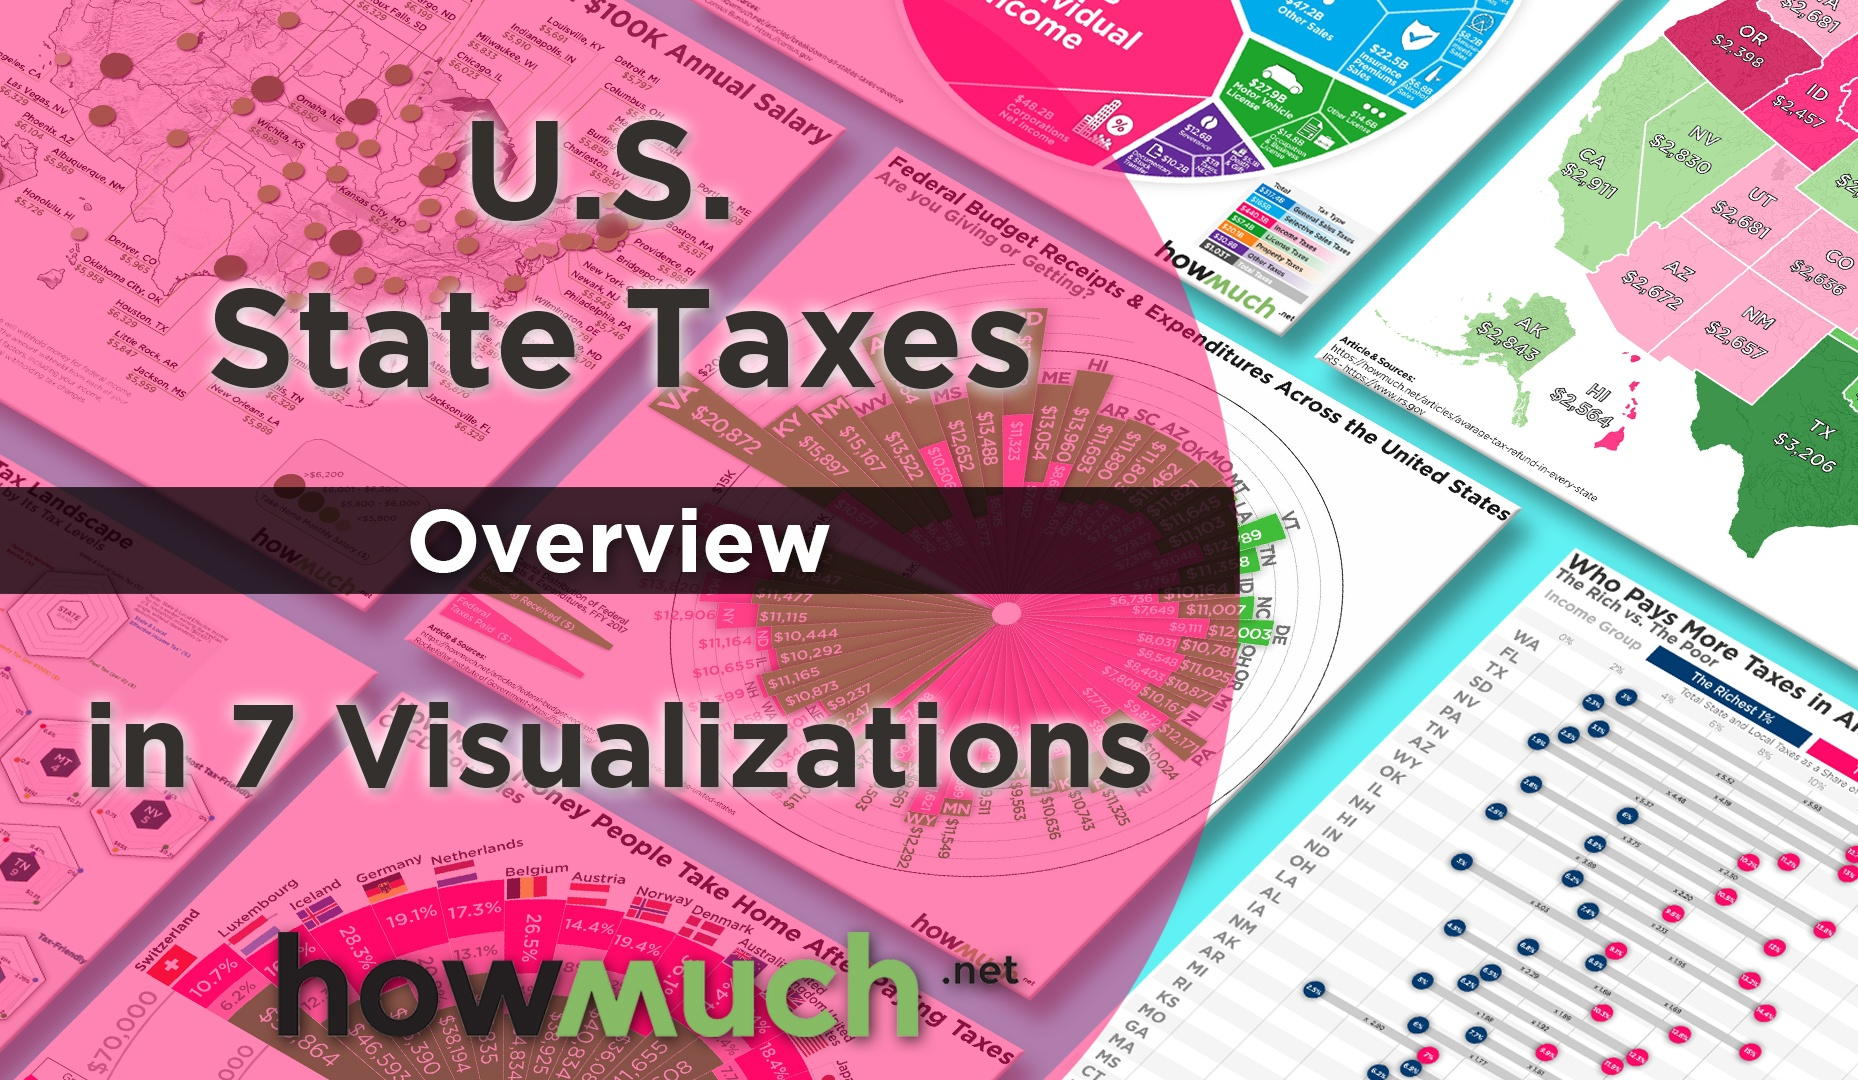 An Overview of U.S. State Taxes in 7 Visualizations